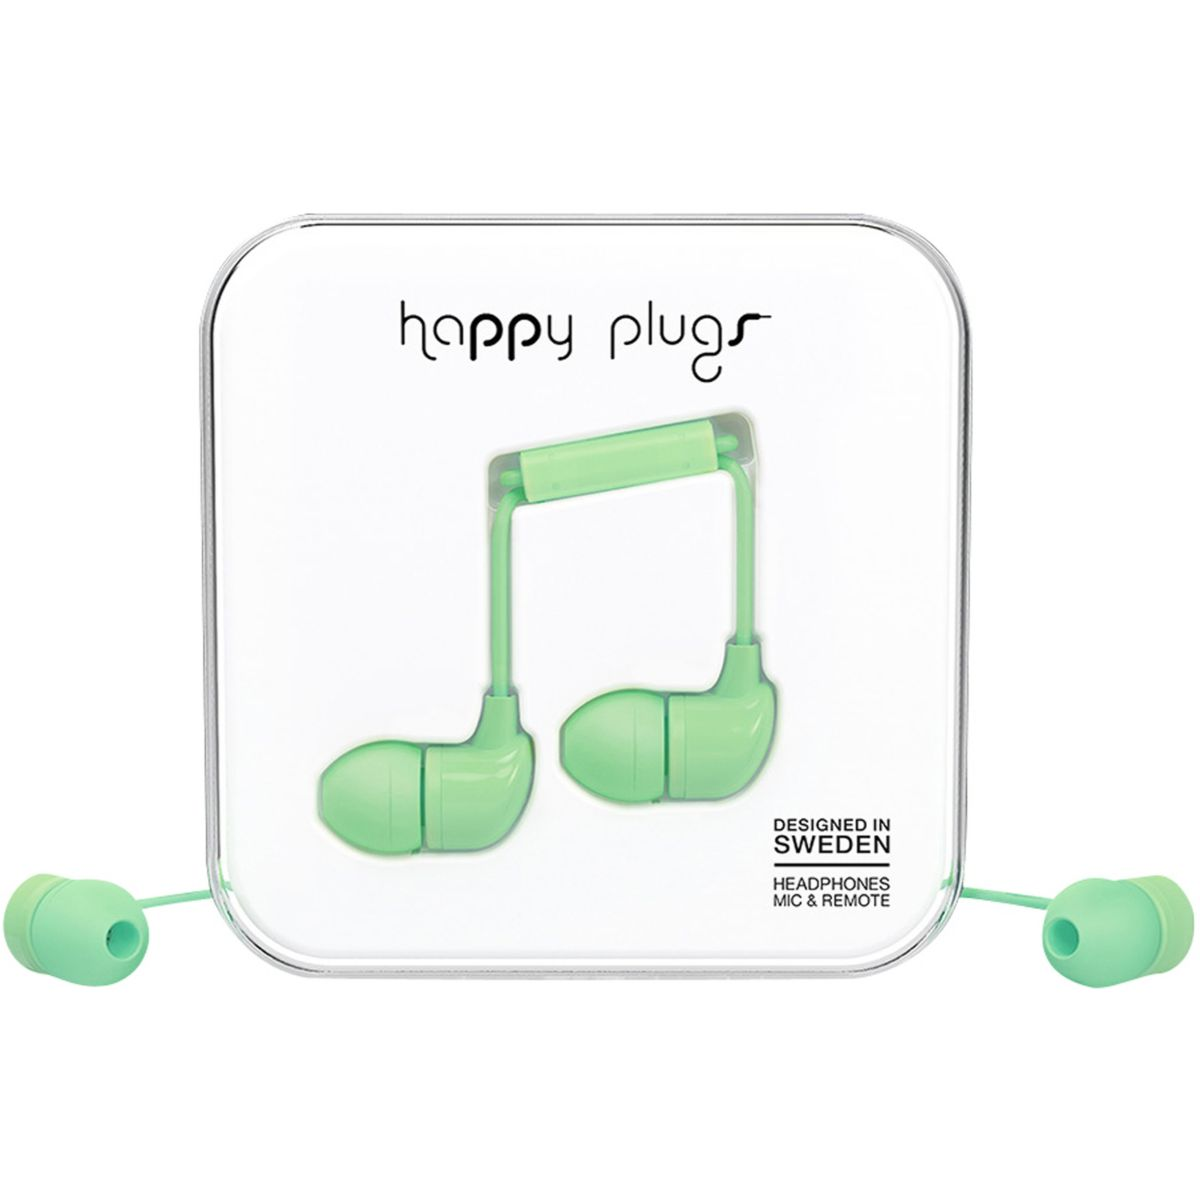 Ecouteurs avec micro happy plugs in-ear mint